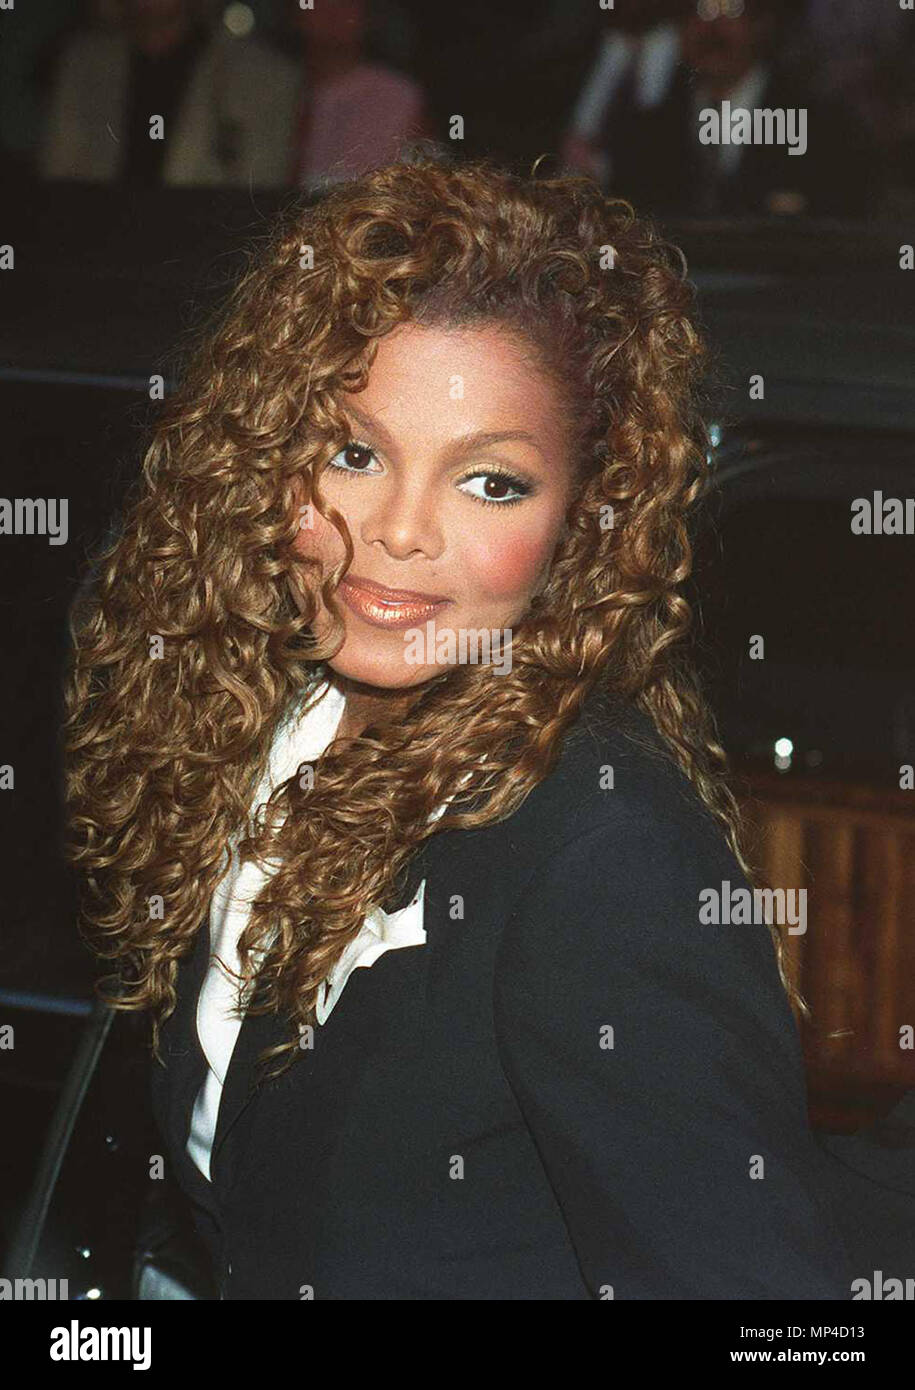 Janet Jackson========== JACKSON JANET A Event in Hollywood